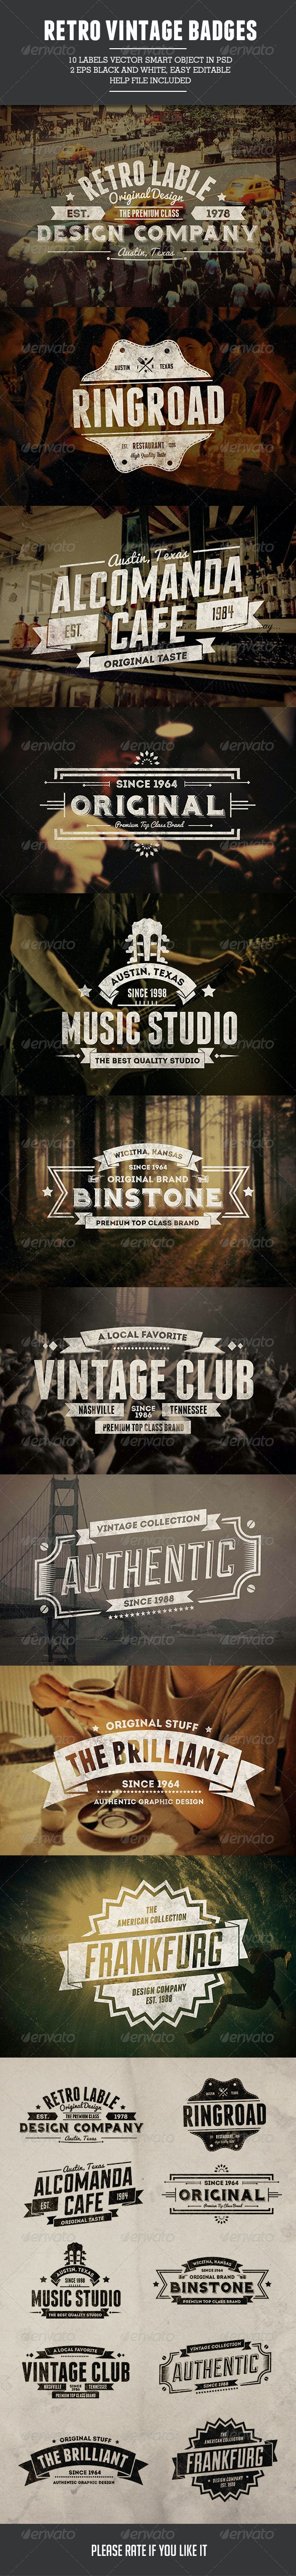 10 Retro Vintage Badges - Badges & Stickers Web Elements